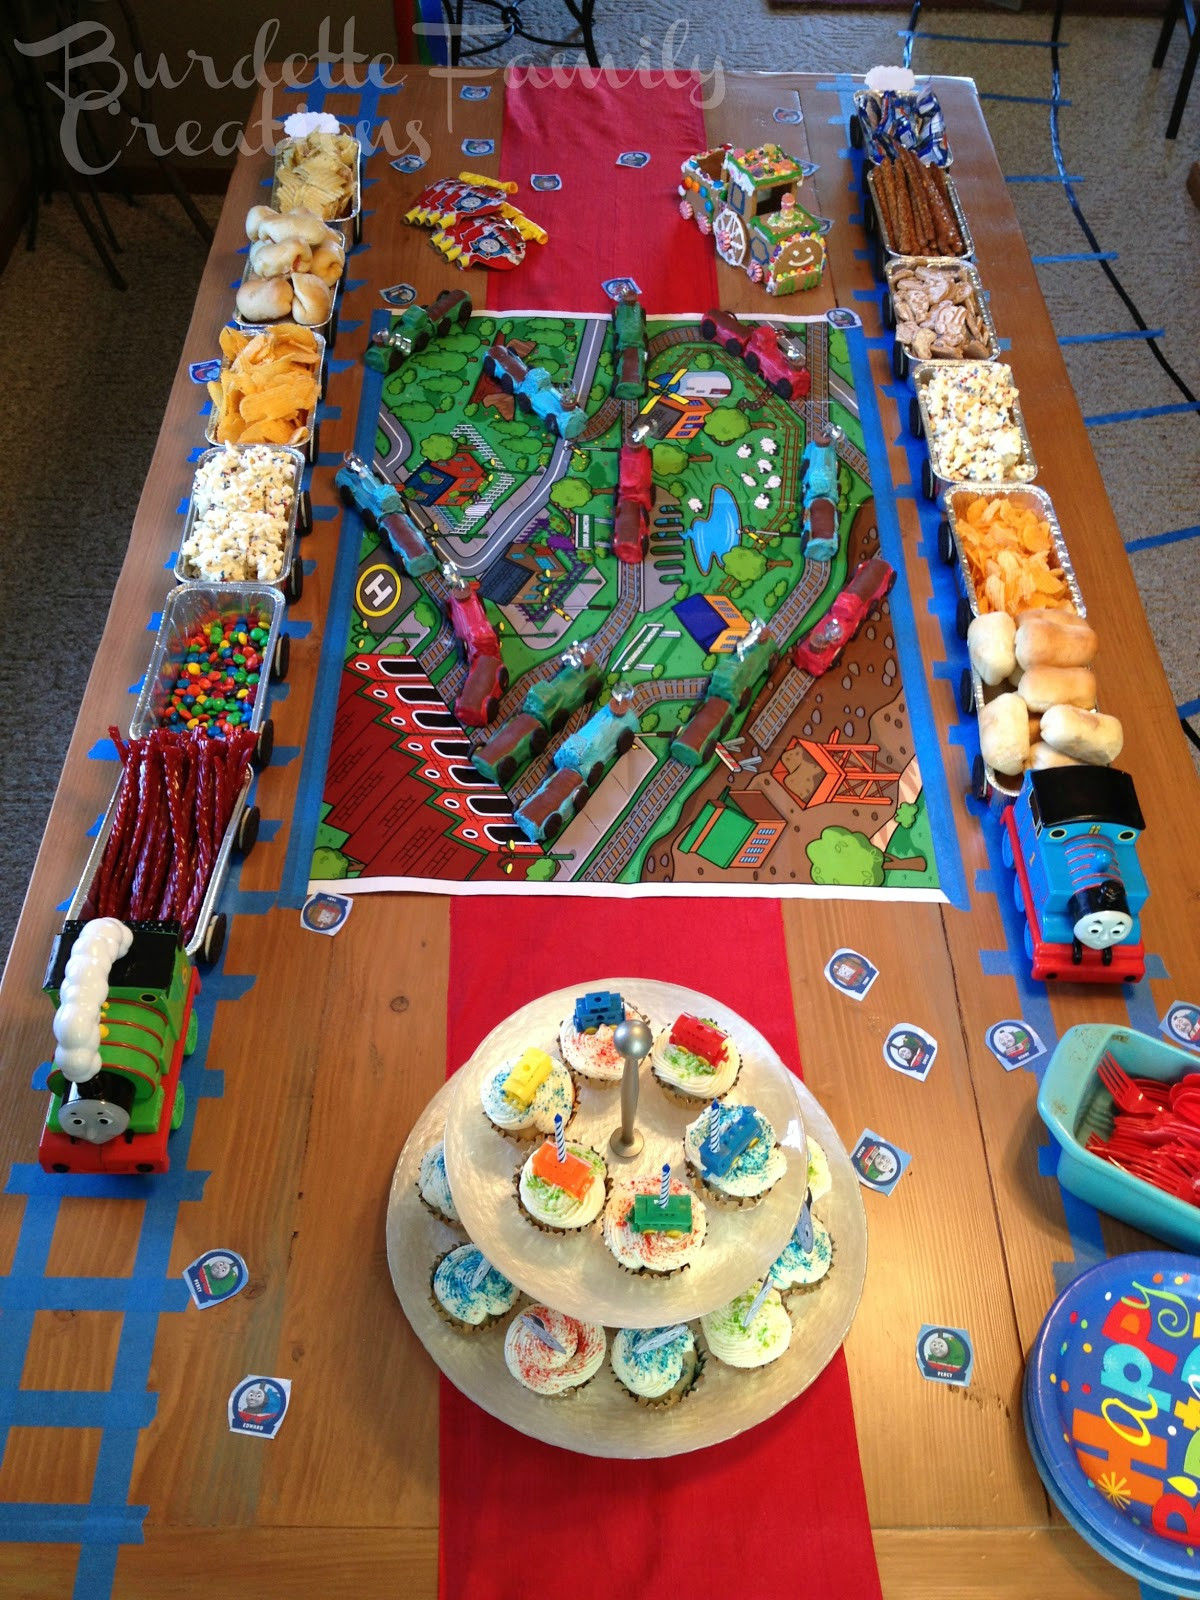 Best ideas about Train Birthday Decorations . Save or Pin Burdette Family Creations Thomas the Train Birthday Party Now.